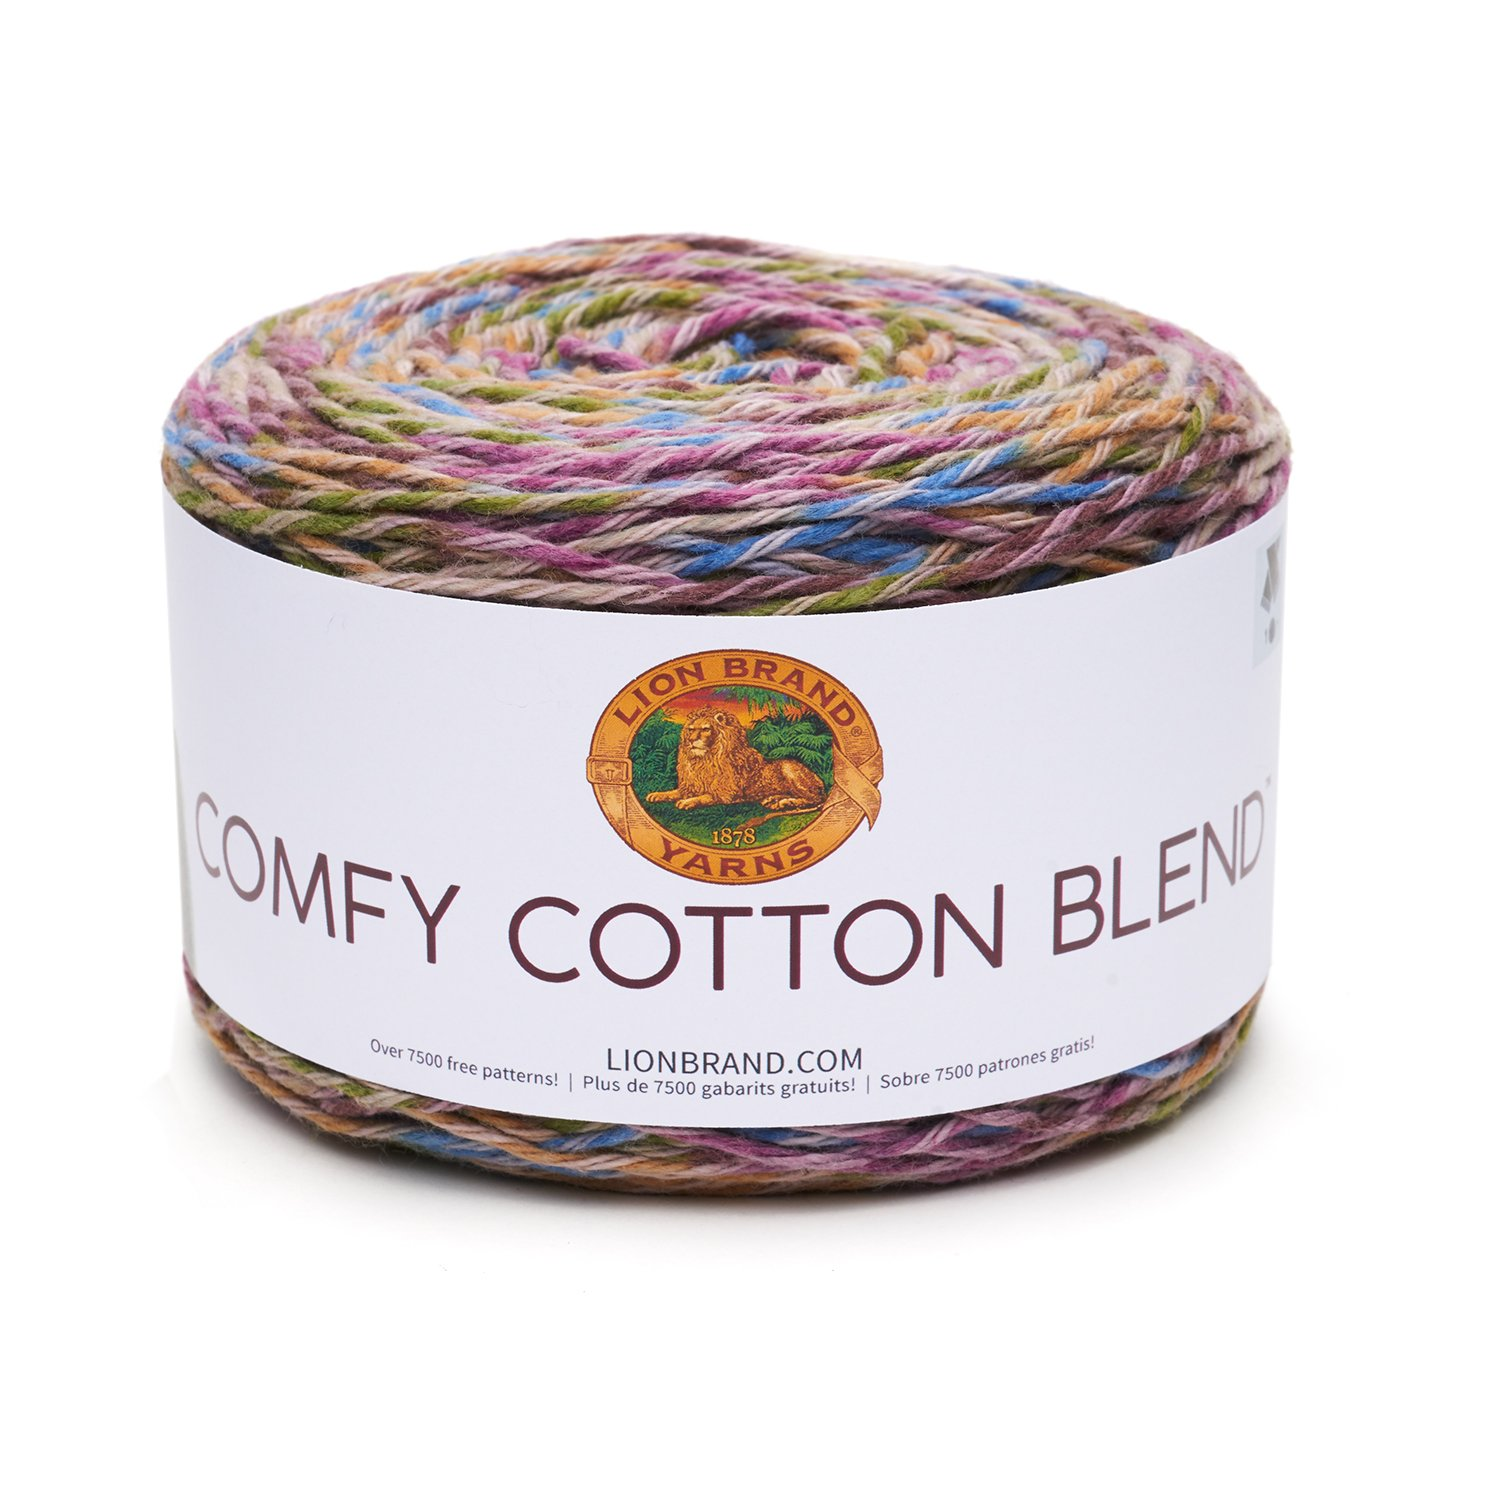 Lion Brand Yarn 756-704 Comfy Cotton Blend Yarn, Stained Glass Lion Brand Yarn Company